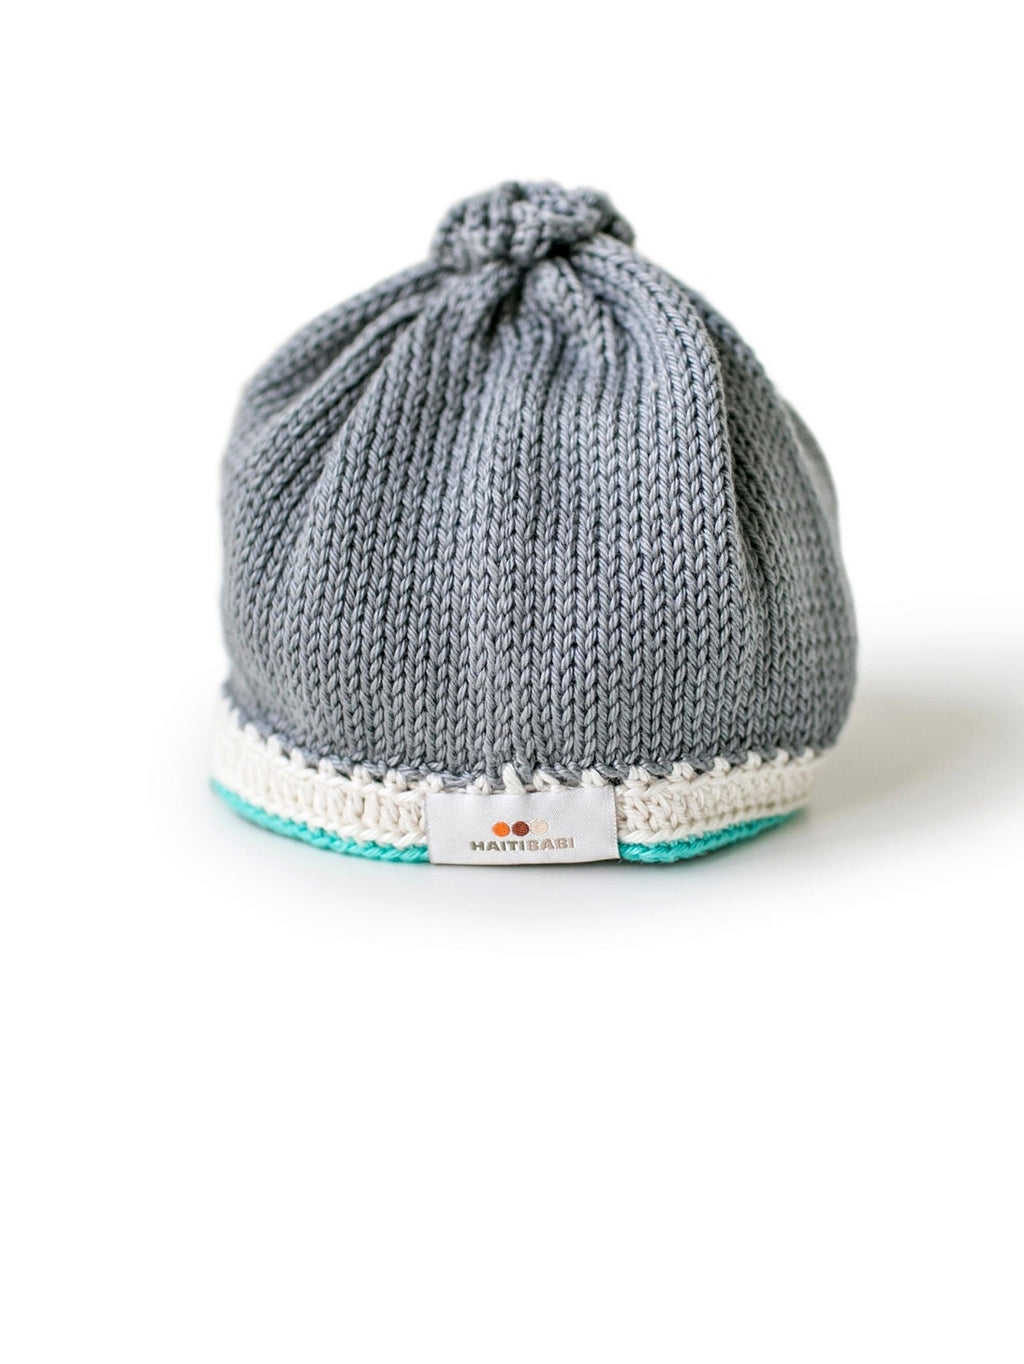 Hand-knit Pima Cotton Baby Hat (Stone and Teal)